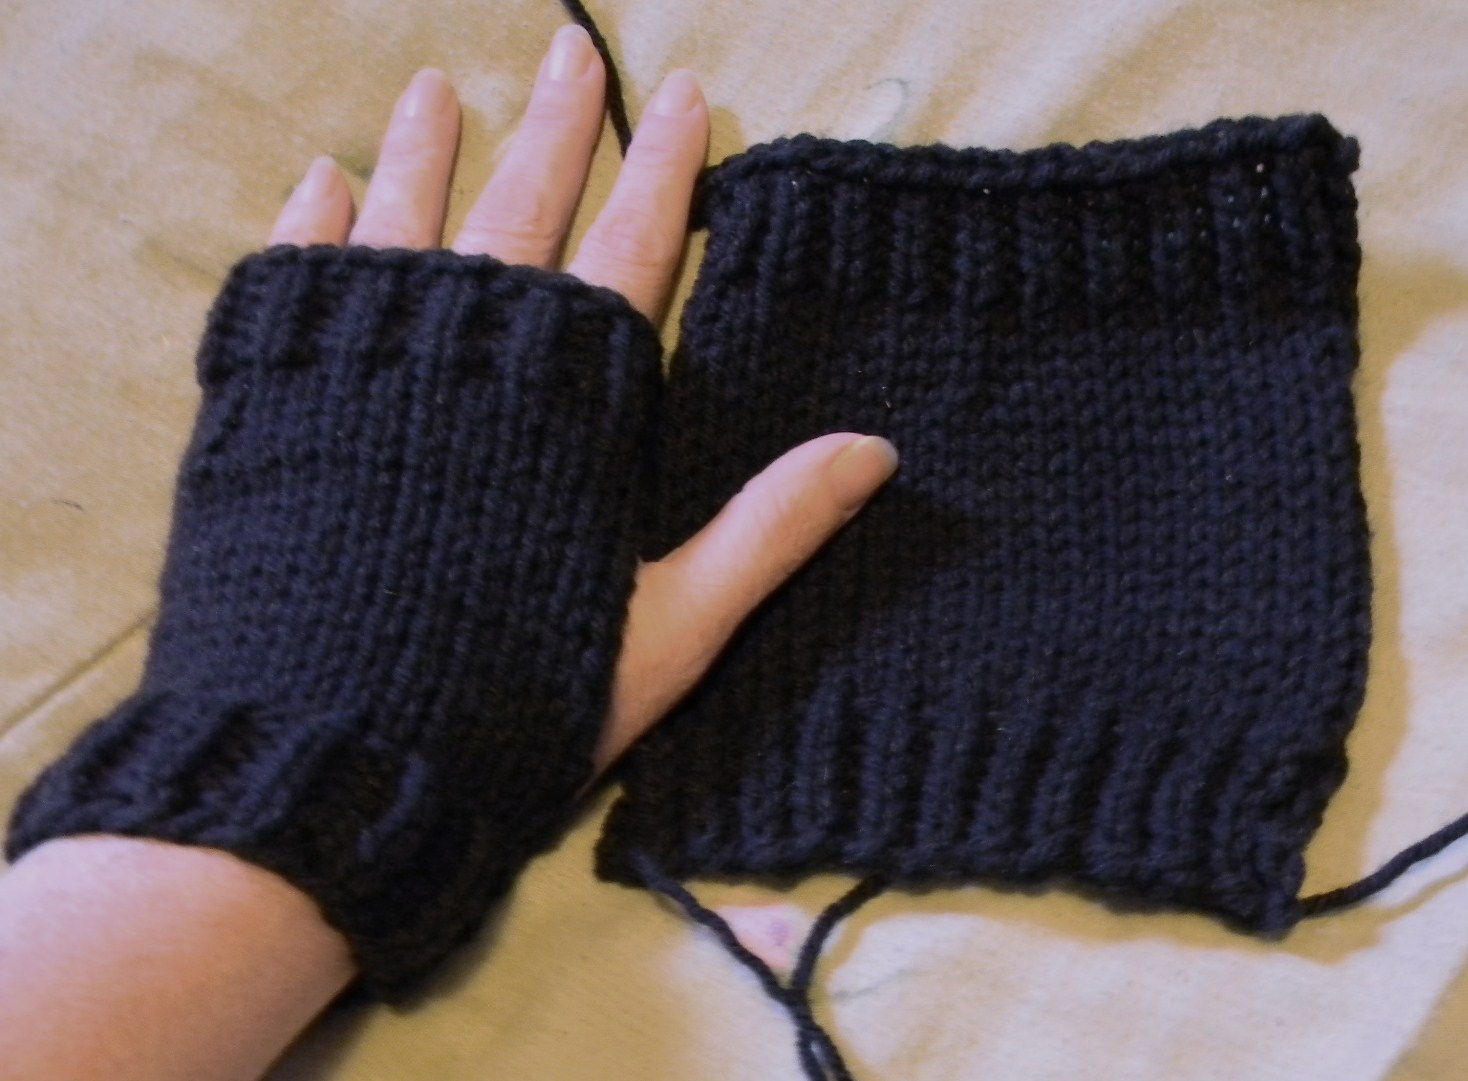 Life Is Good: easy flat knit hand warmers